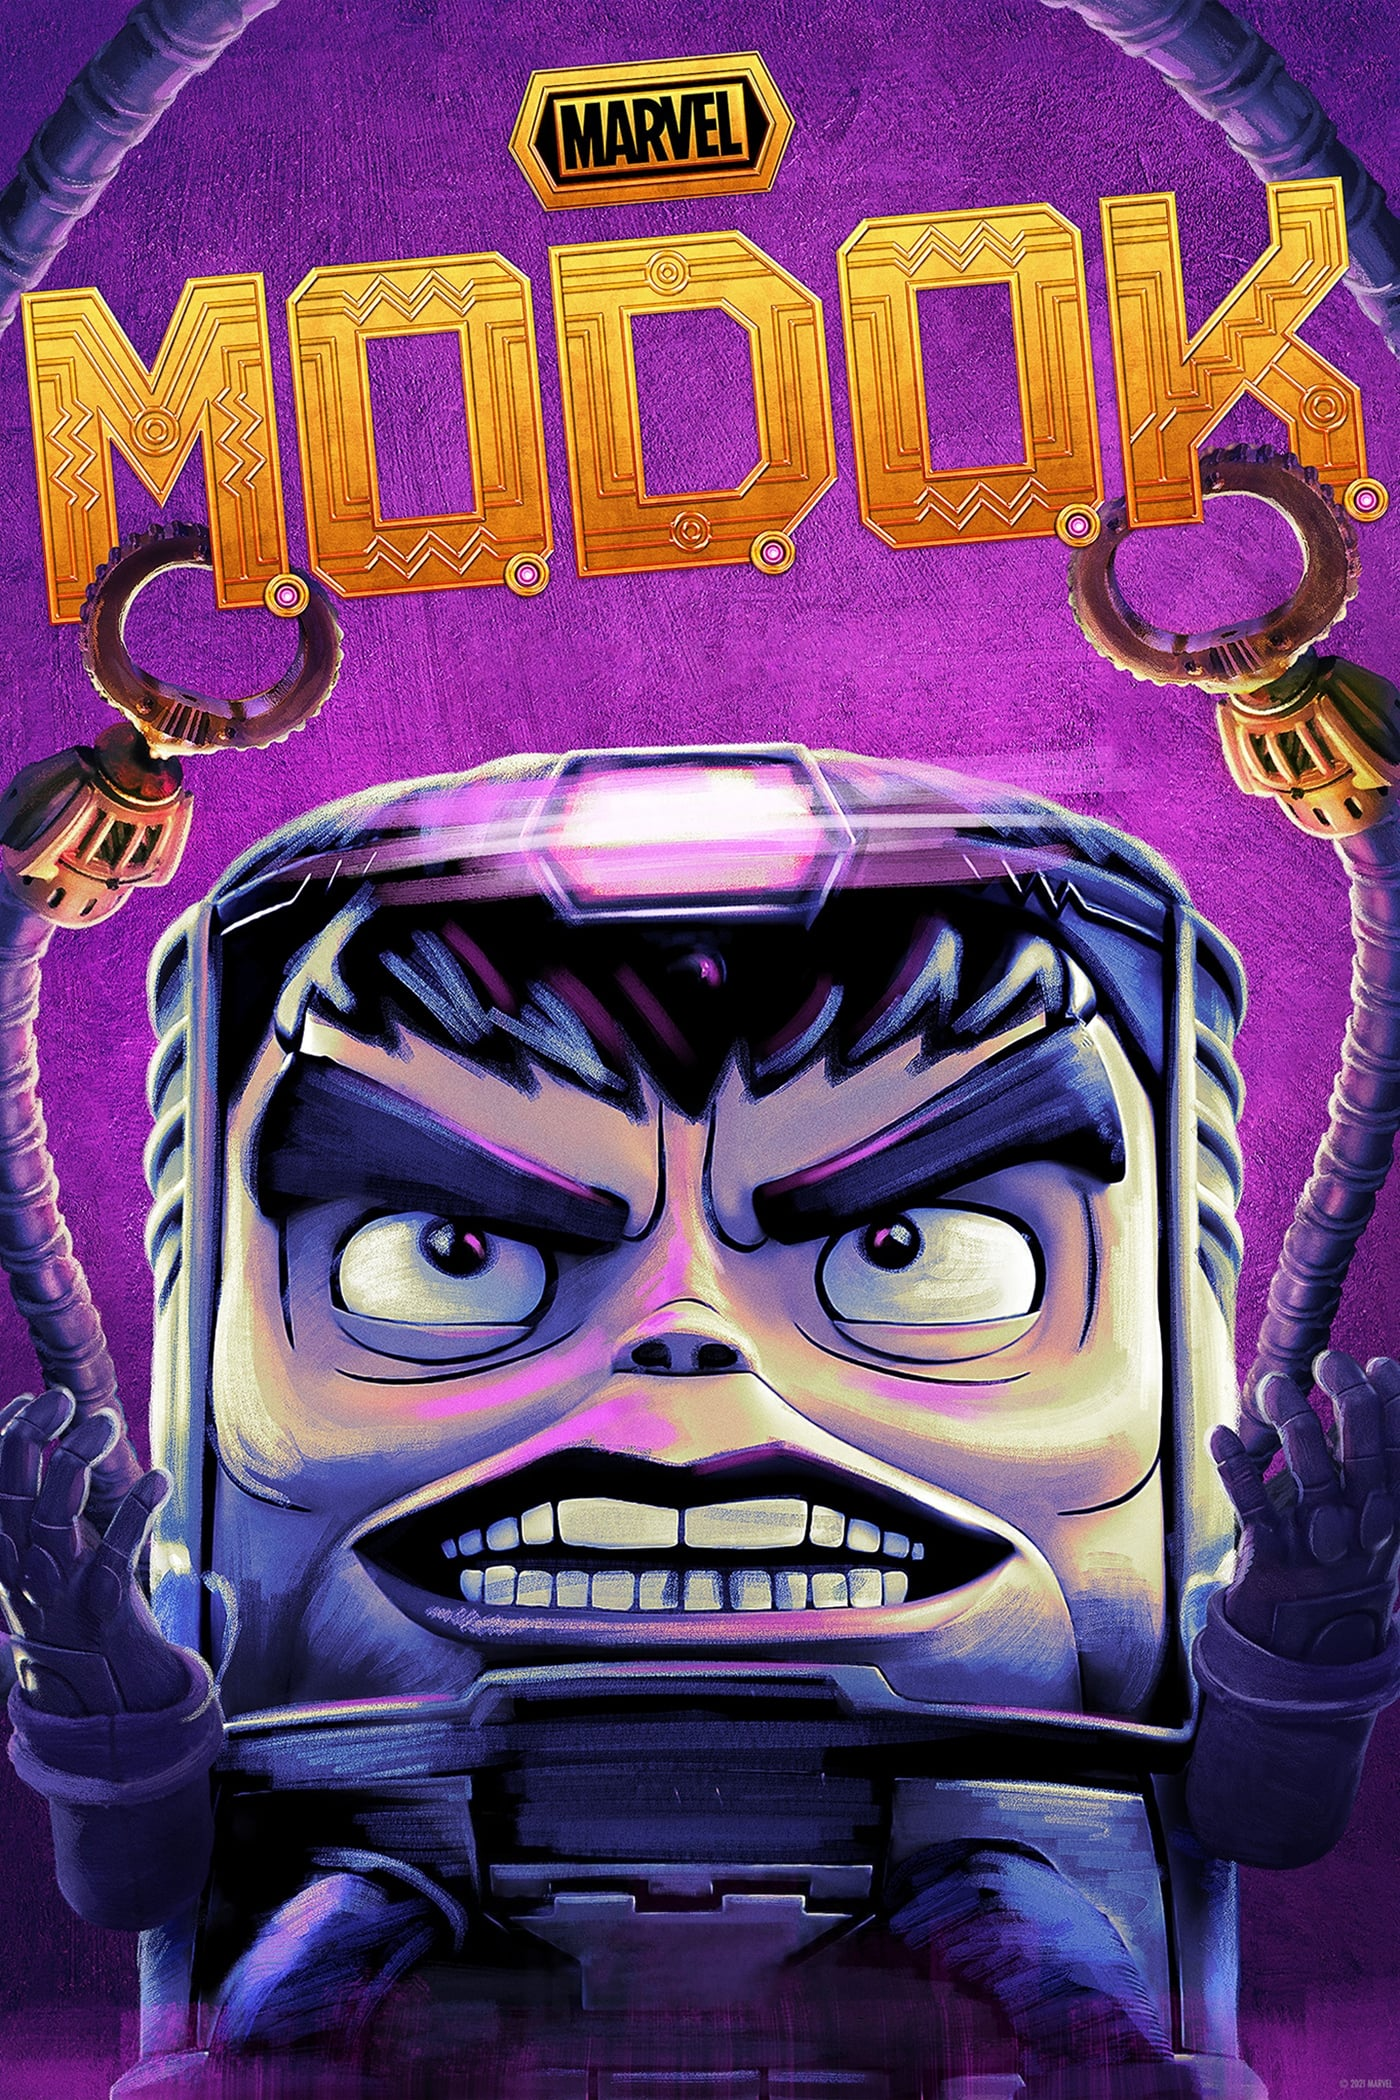 Marvel's M.O.D.O.K. TV Shows About Based On Comic